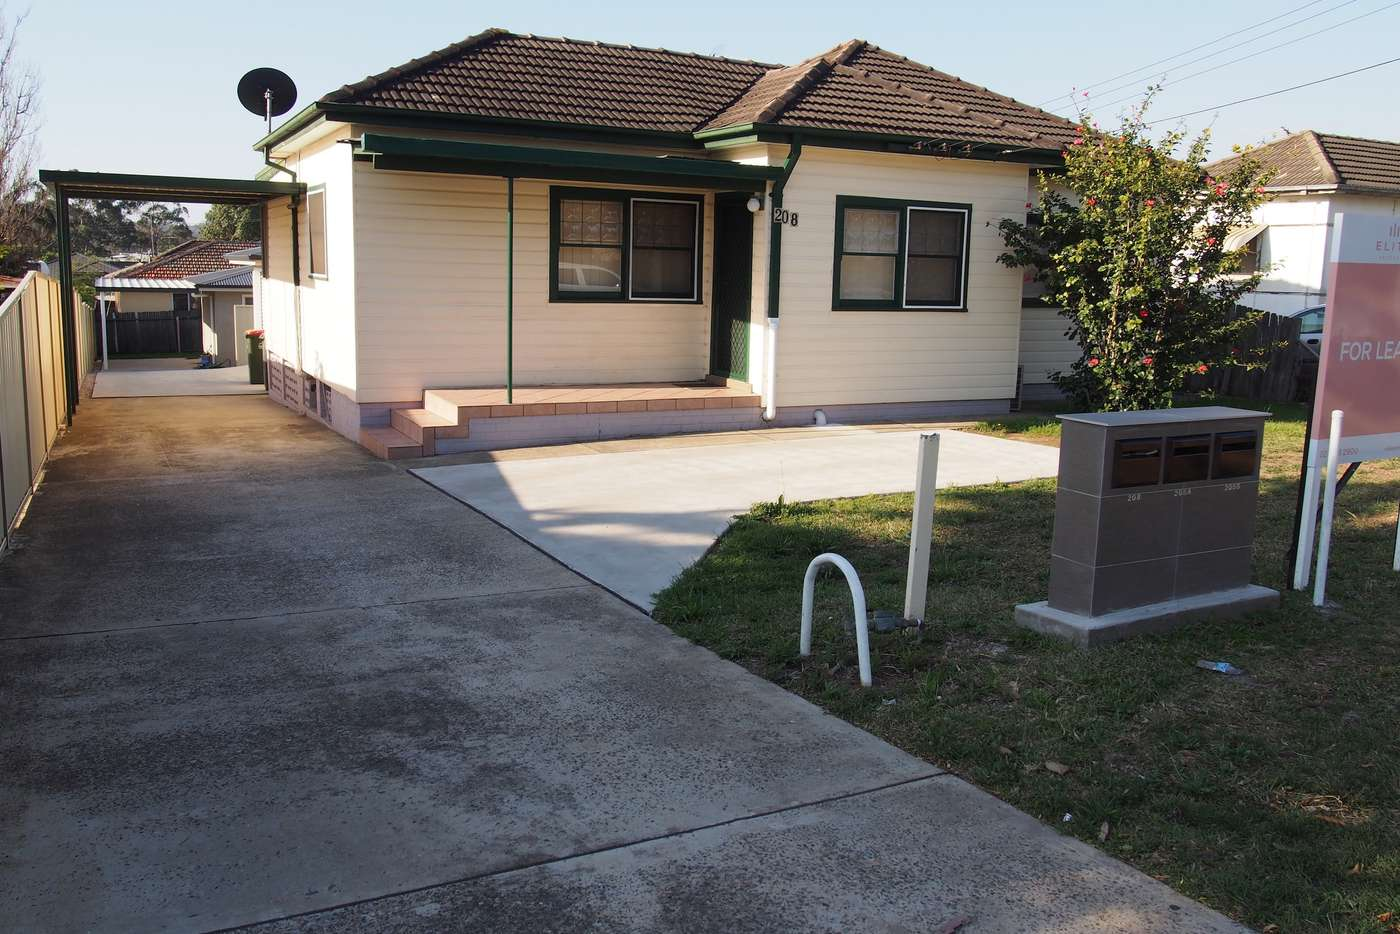 Main view of Homely house listing, 208 Victoria Street, Wetherill Park NSW 2164